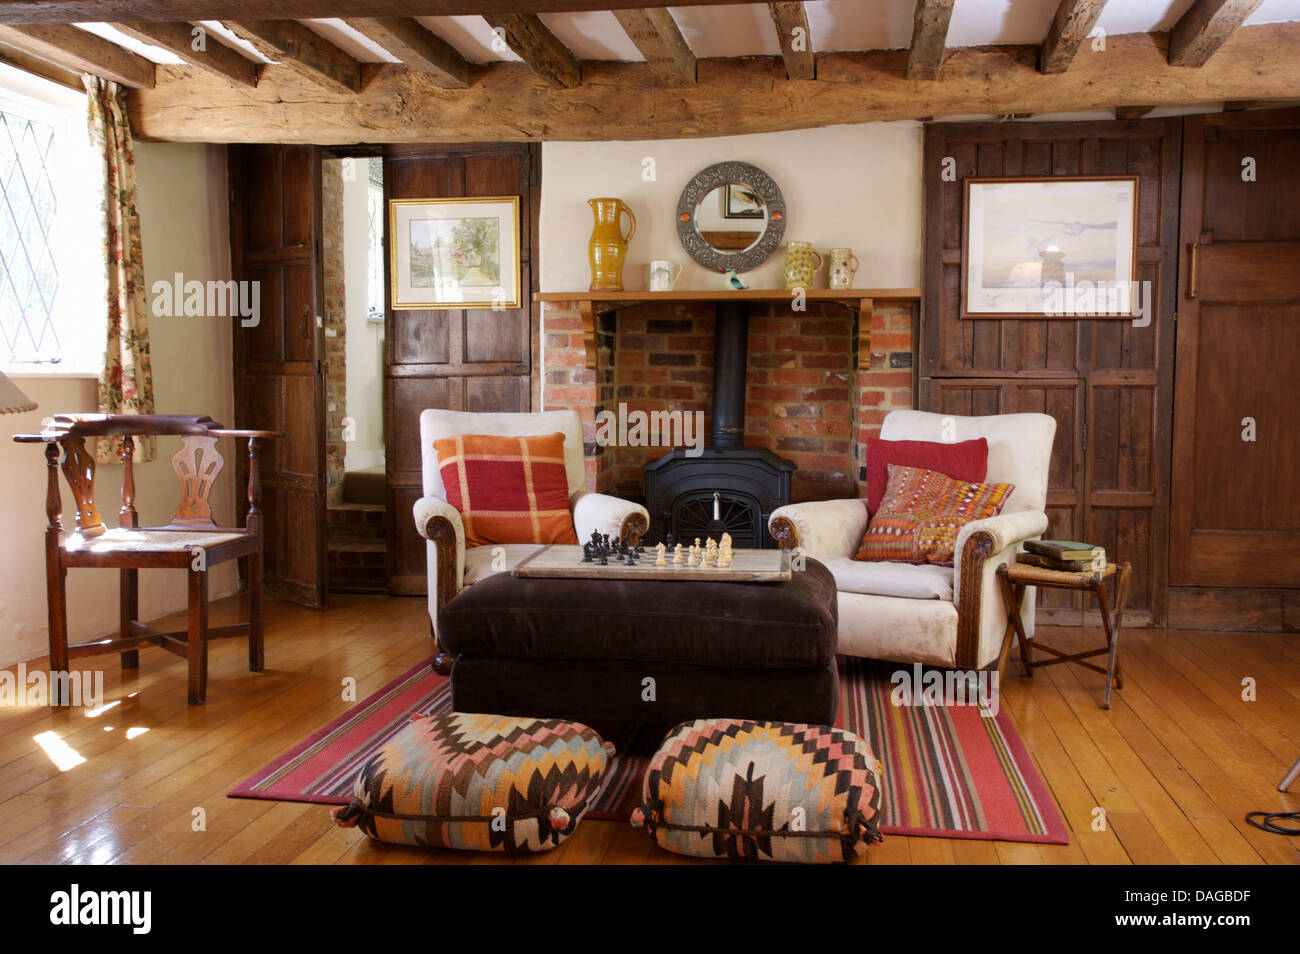 Kelim Upholstered Stools And White Armchairs Arranged Around Brown Ottoman In Beamed Cottage Living Room With Wooden Flooring